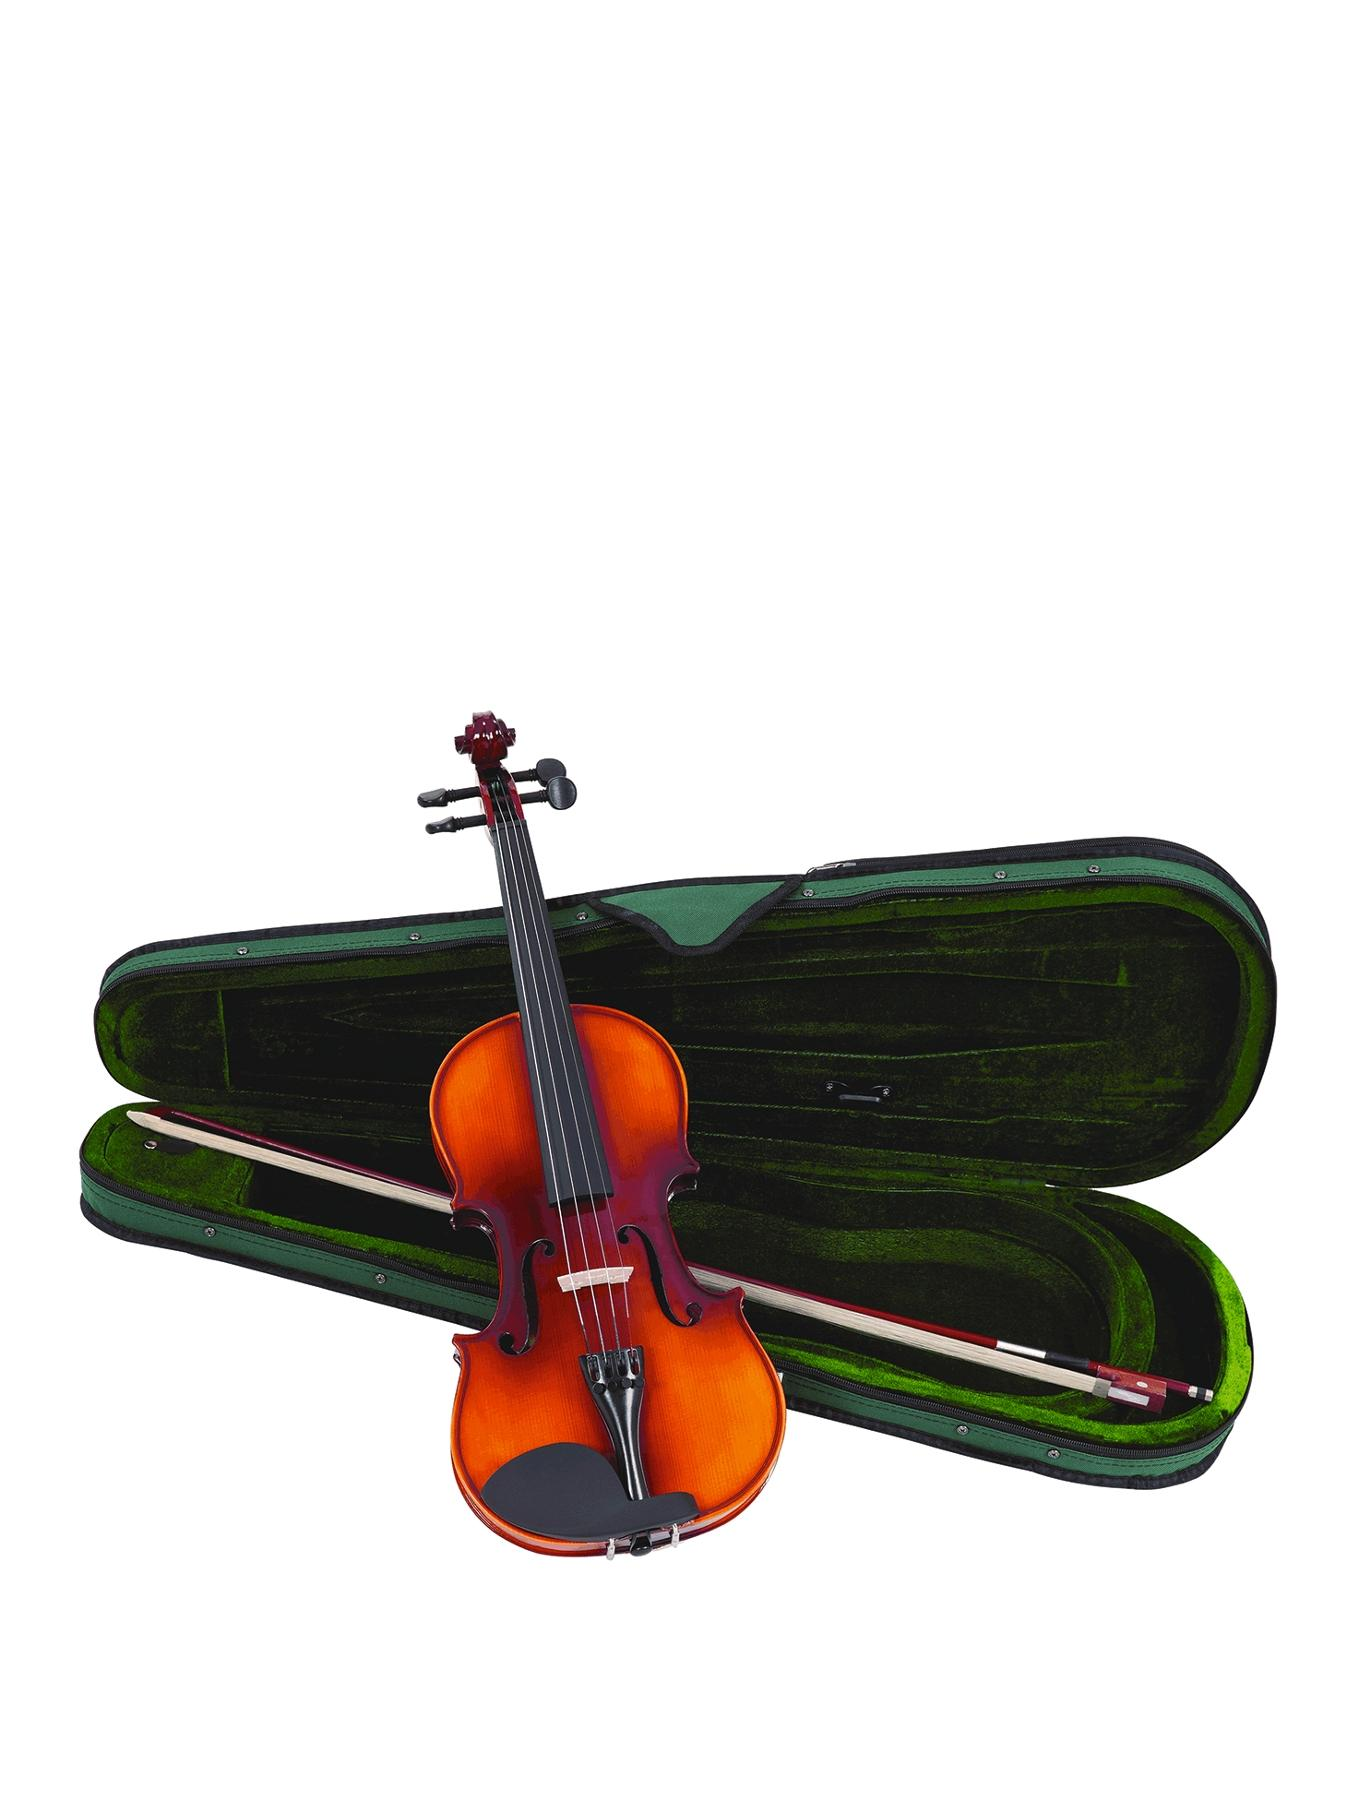 Debut Full Size Violin.